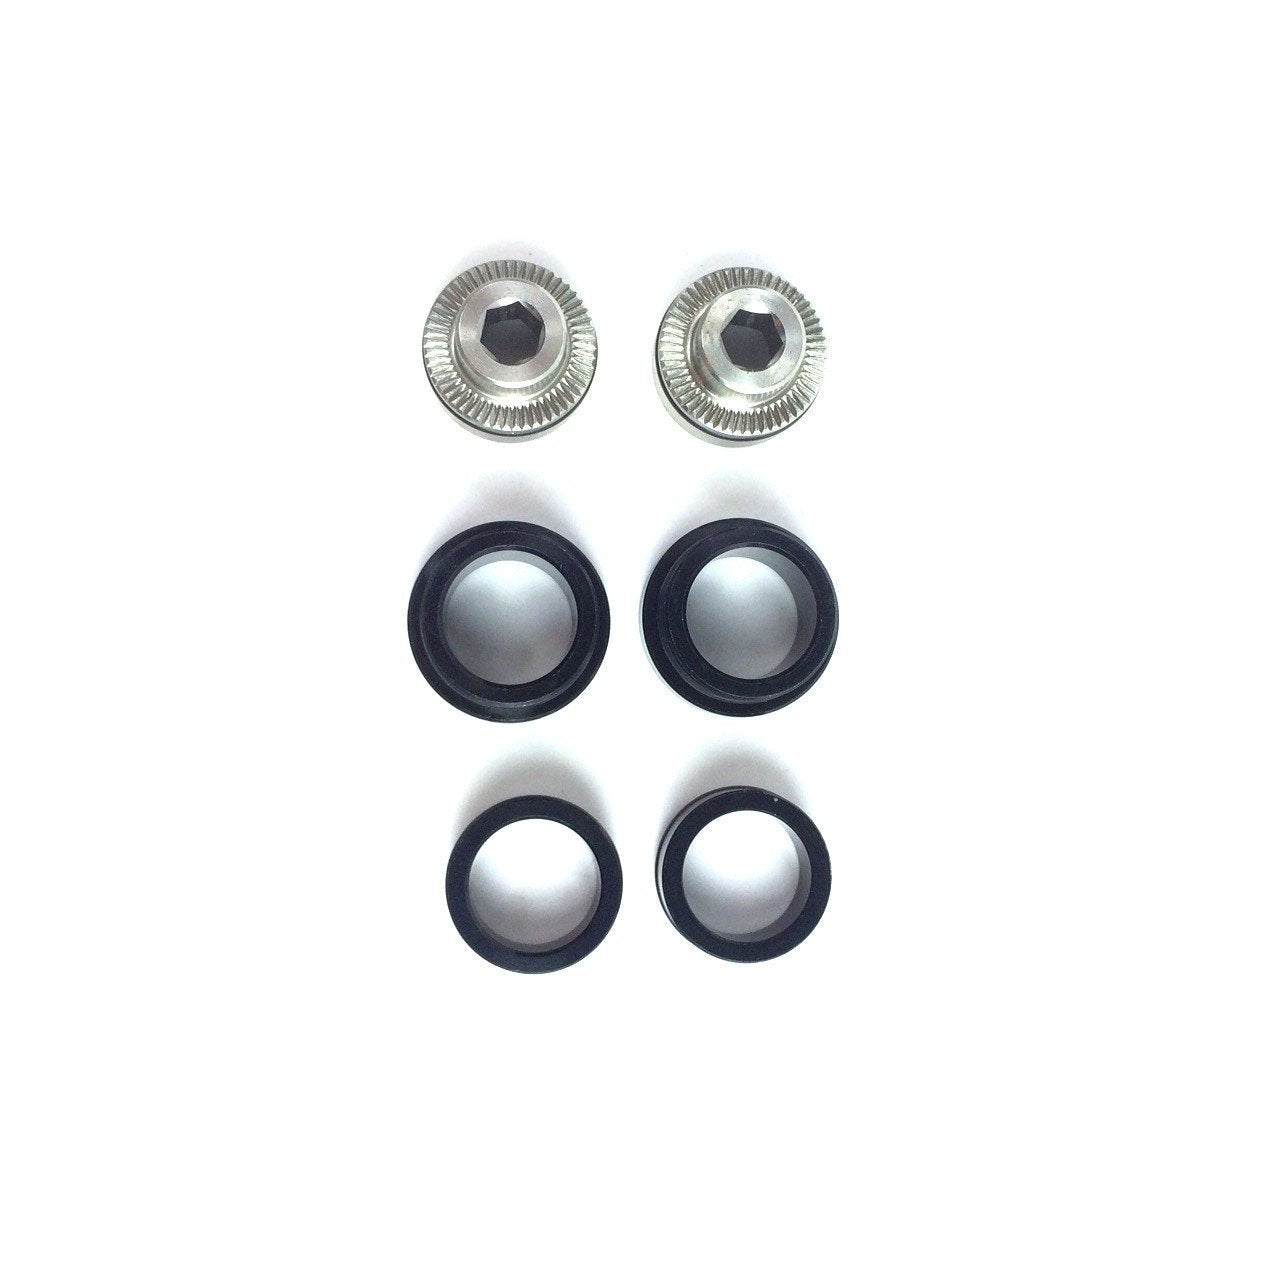 Gen2 Axle Endcap Plug Kit, for all e*thirteen Rear Hubs